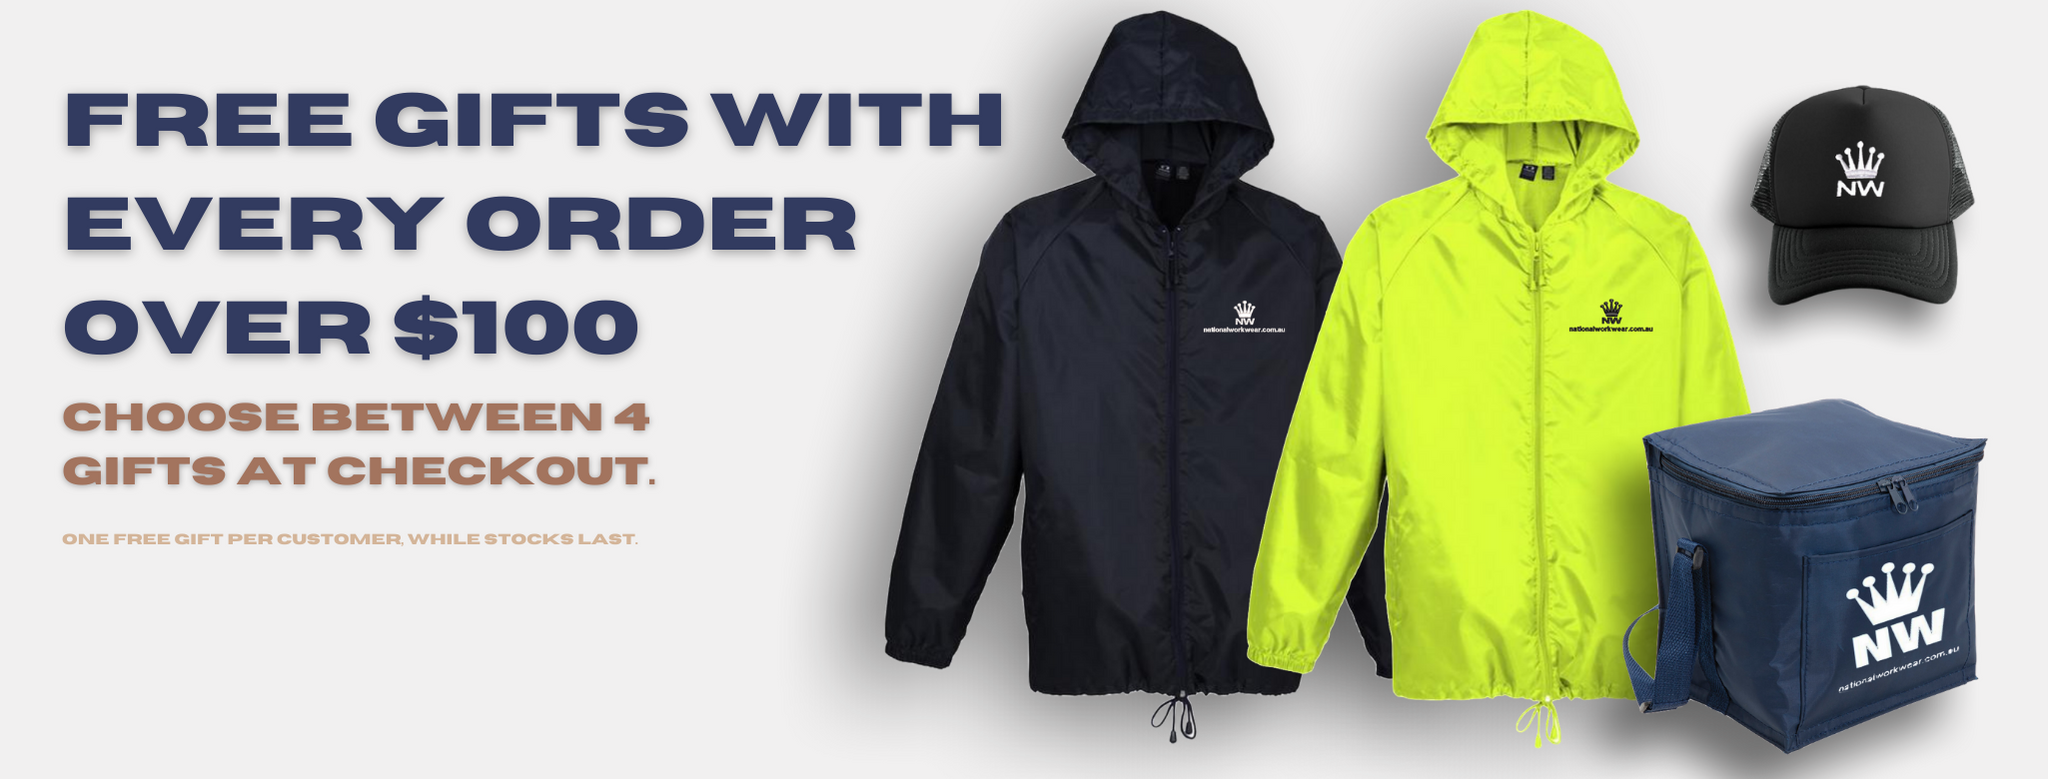 Free gifts at National Workwear Gold Coast Australia. Affordable high quality workwear